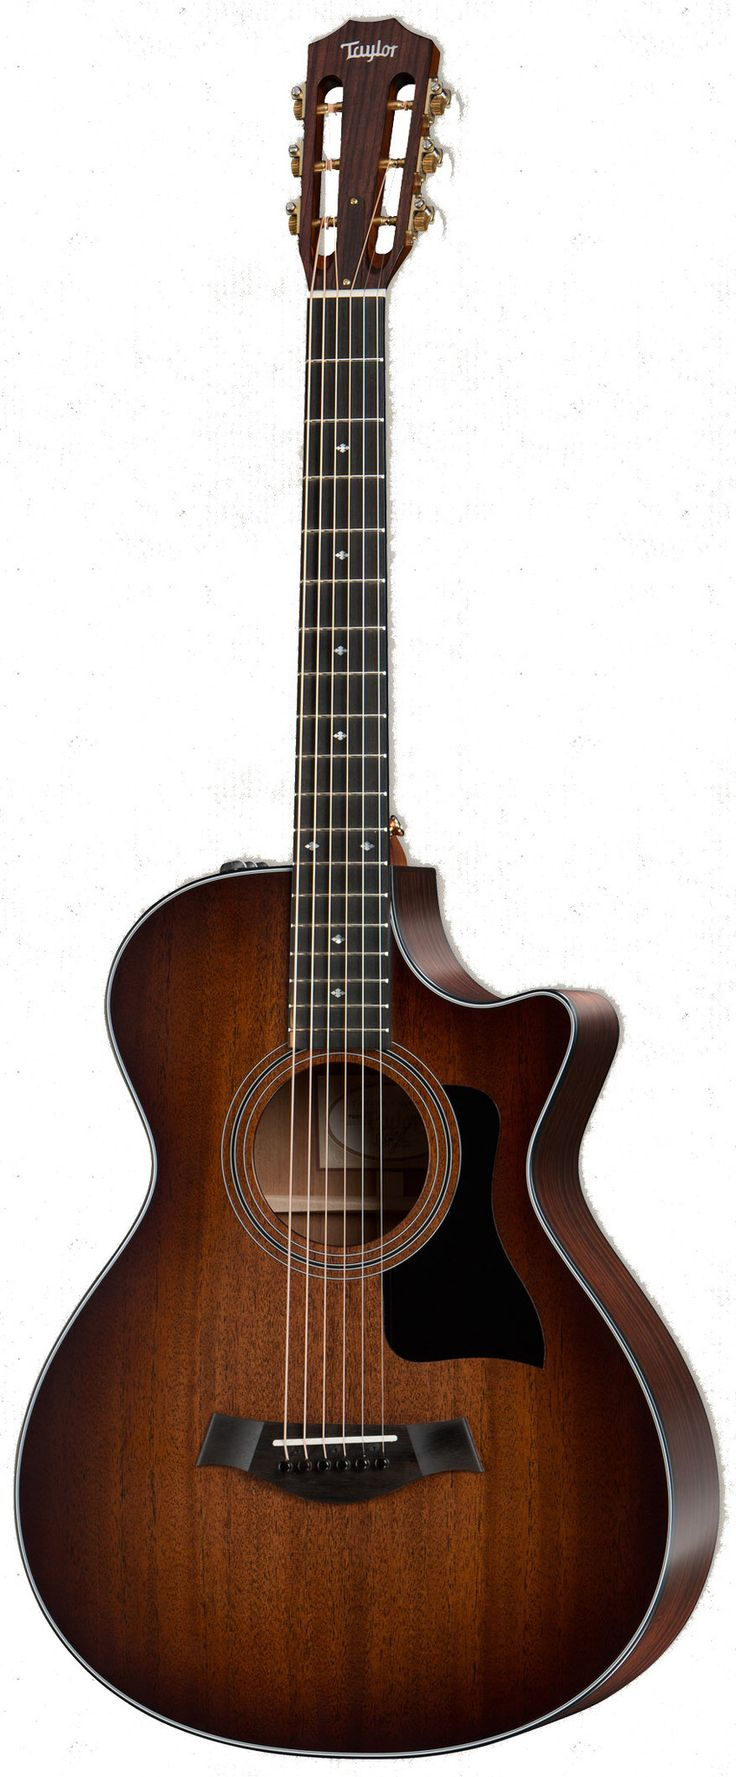 Taylor's 12-fret necks feature the slightly shorter 24-7/8-inch scale length of the Grand Concert and a repositioned bridge that sits closer to the center of the lower bout. The result is a slinkier h